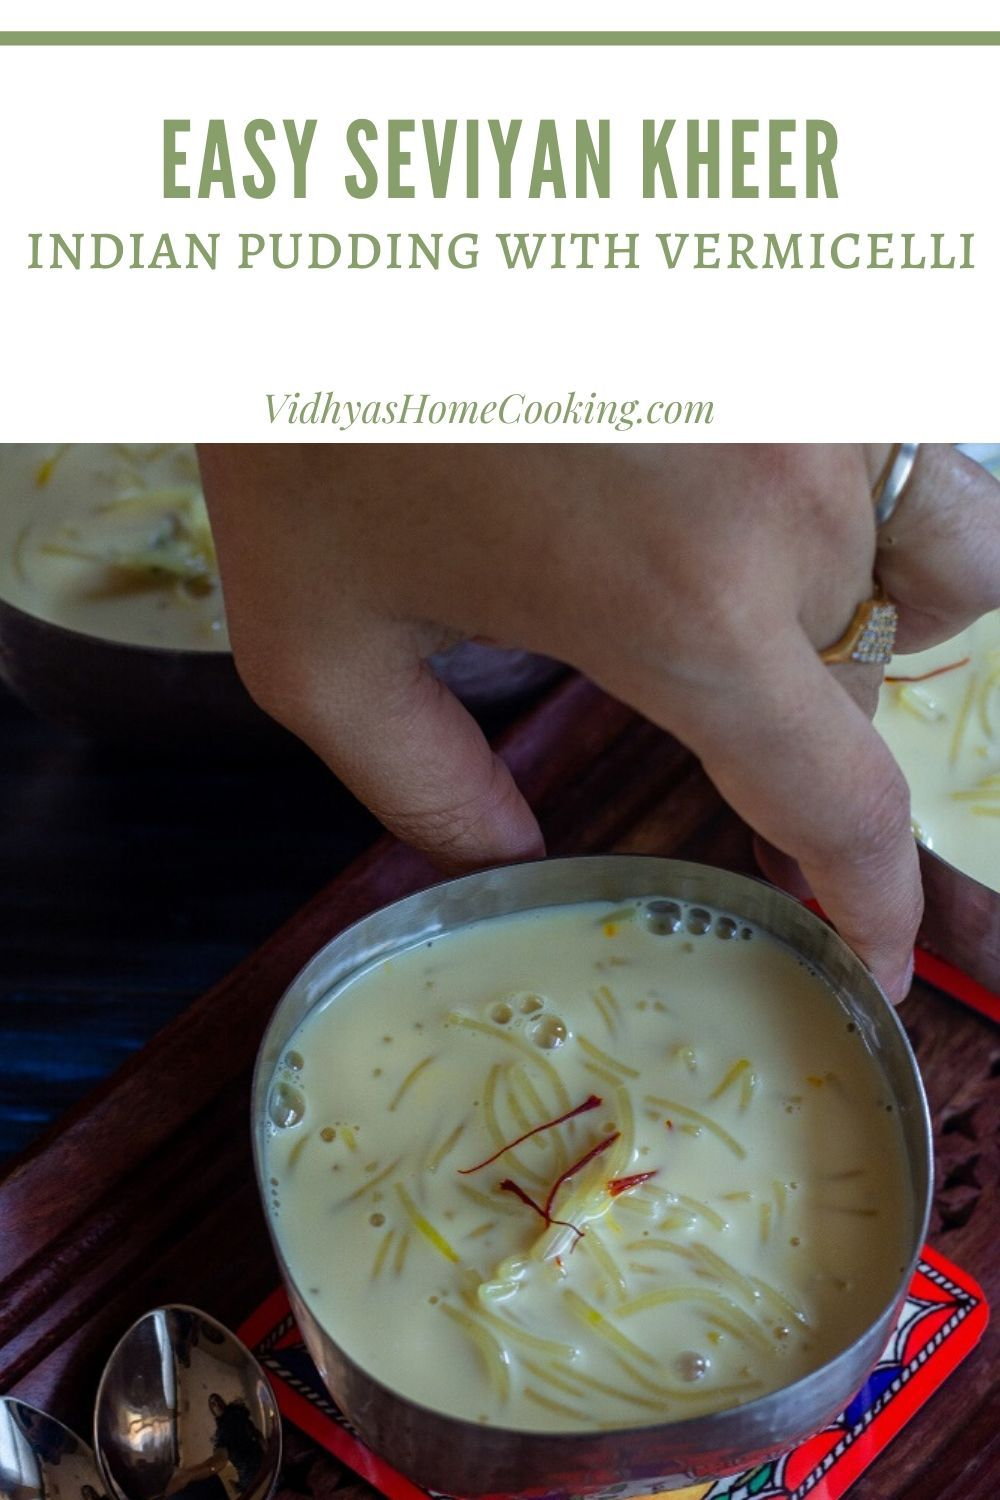 Semiya Payasam Semi Homemade Vermicelli Kheer With Evaporated And Condensed Milk In 2020 Amazing Vegetarian Recipes Vegetarian Recipes Easy Indian Pudding